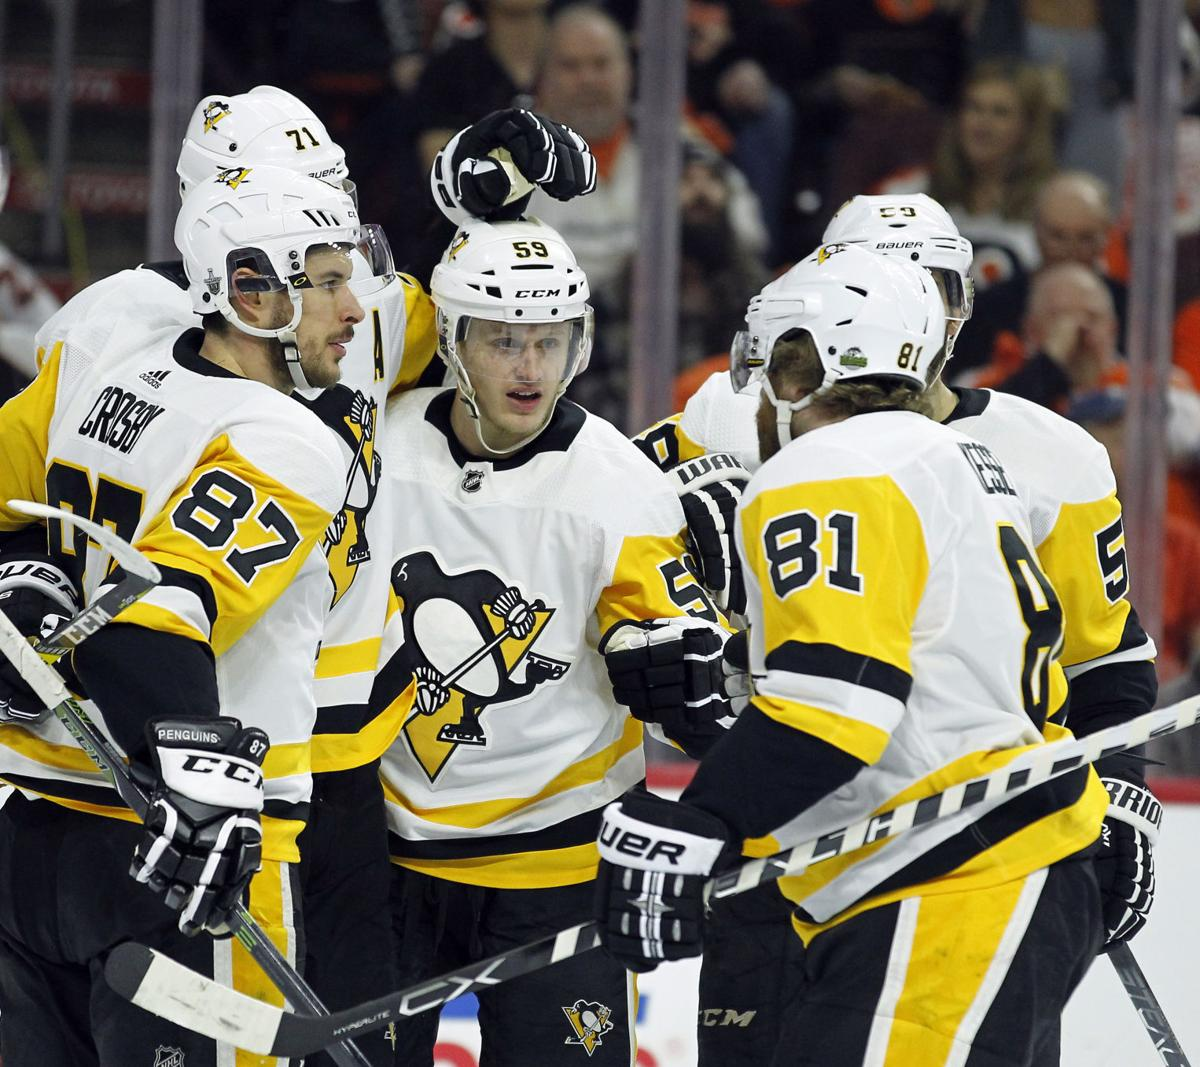 Guentzel's four goals leads Pens over Flyers in series clincher